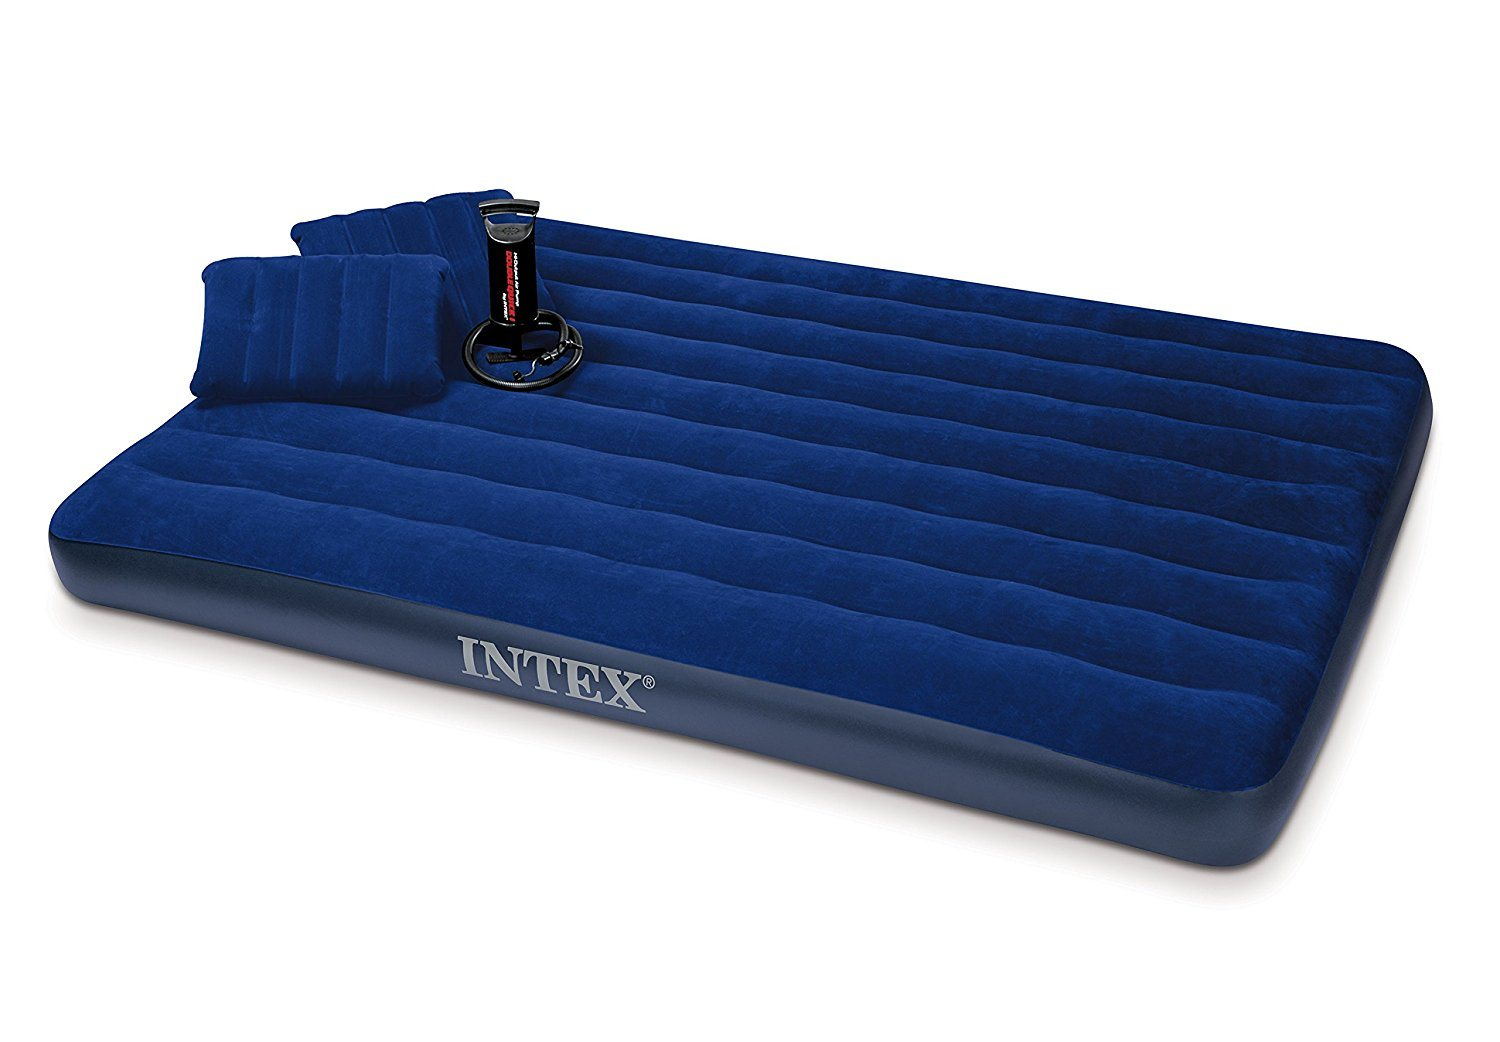 Intex Classic best air mattress